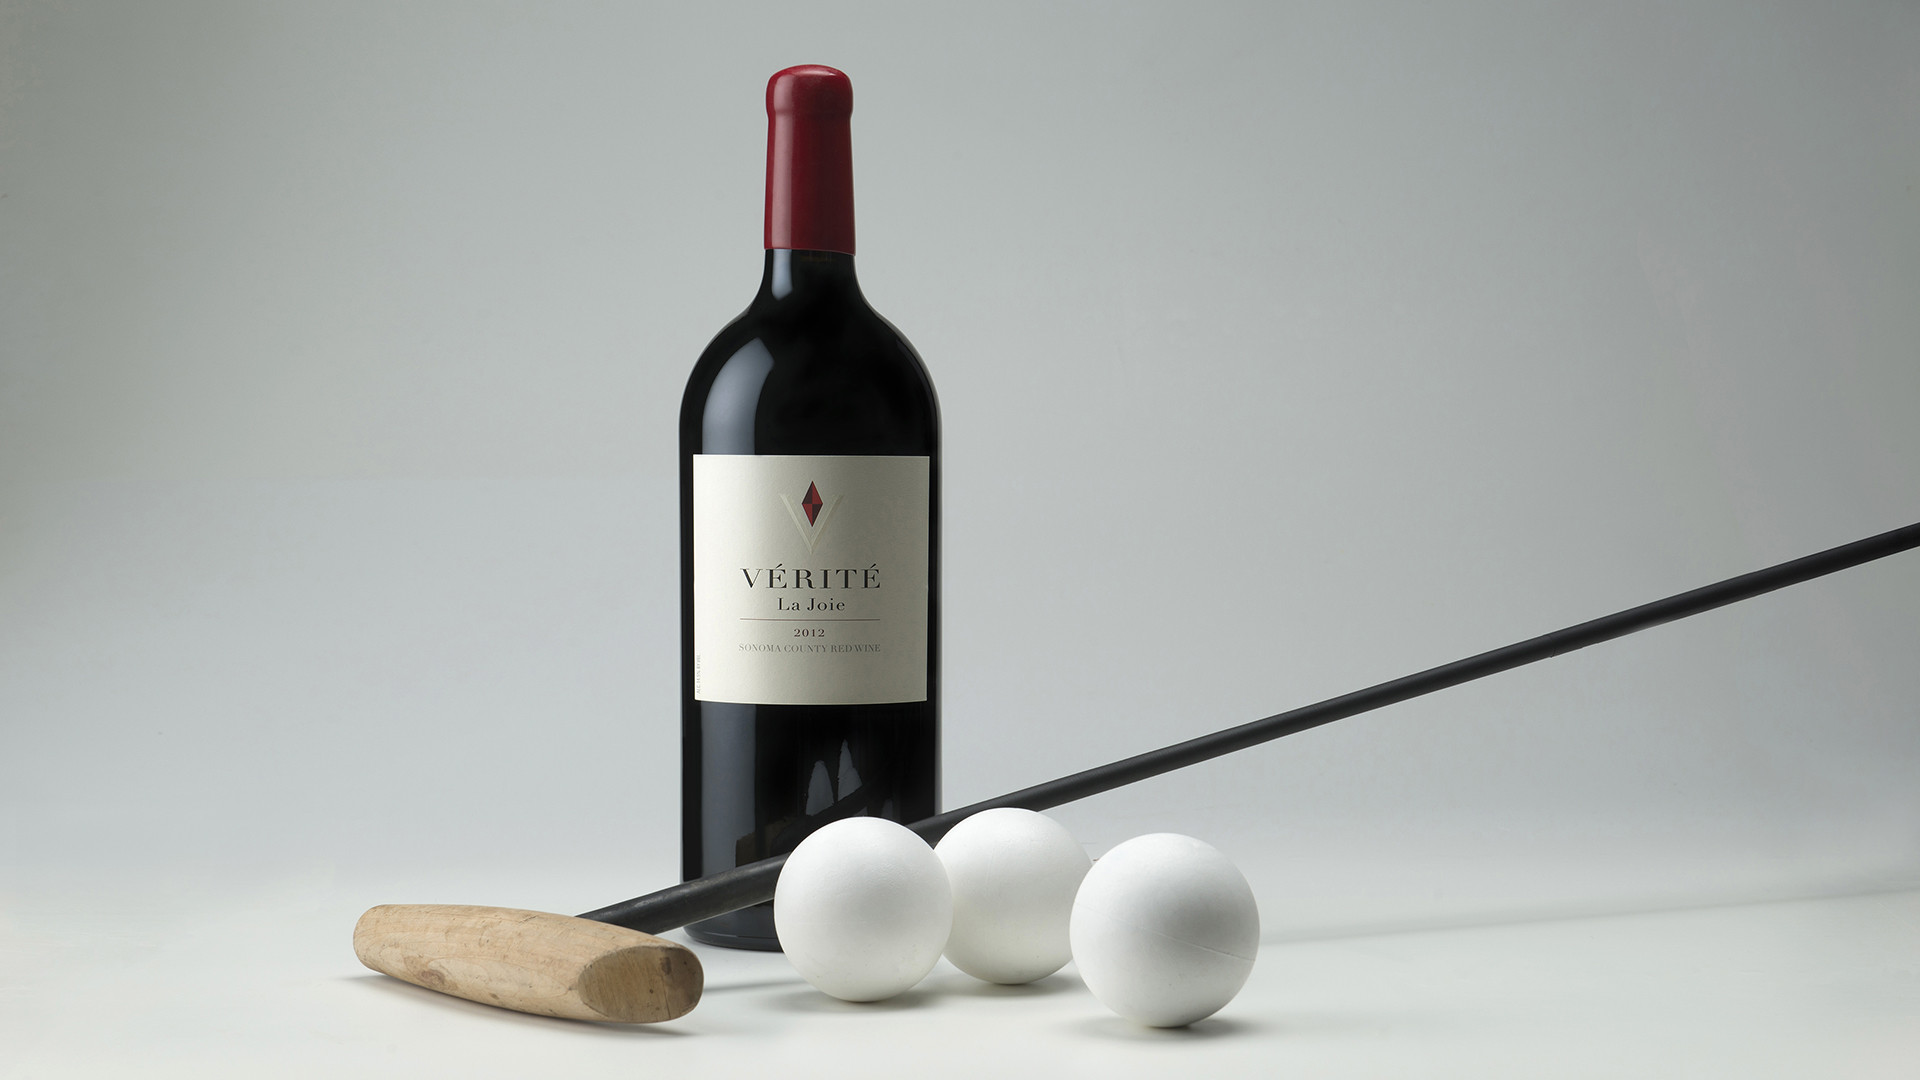 Vérité is the official wine of the Guards Polo Club